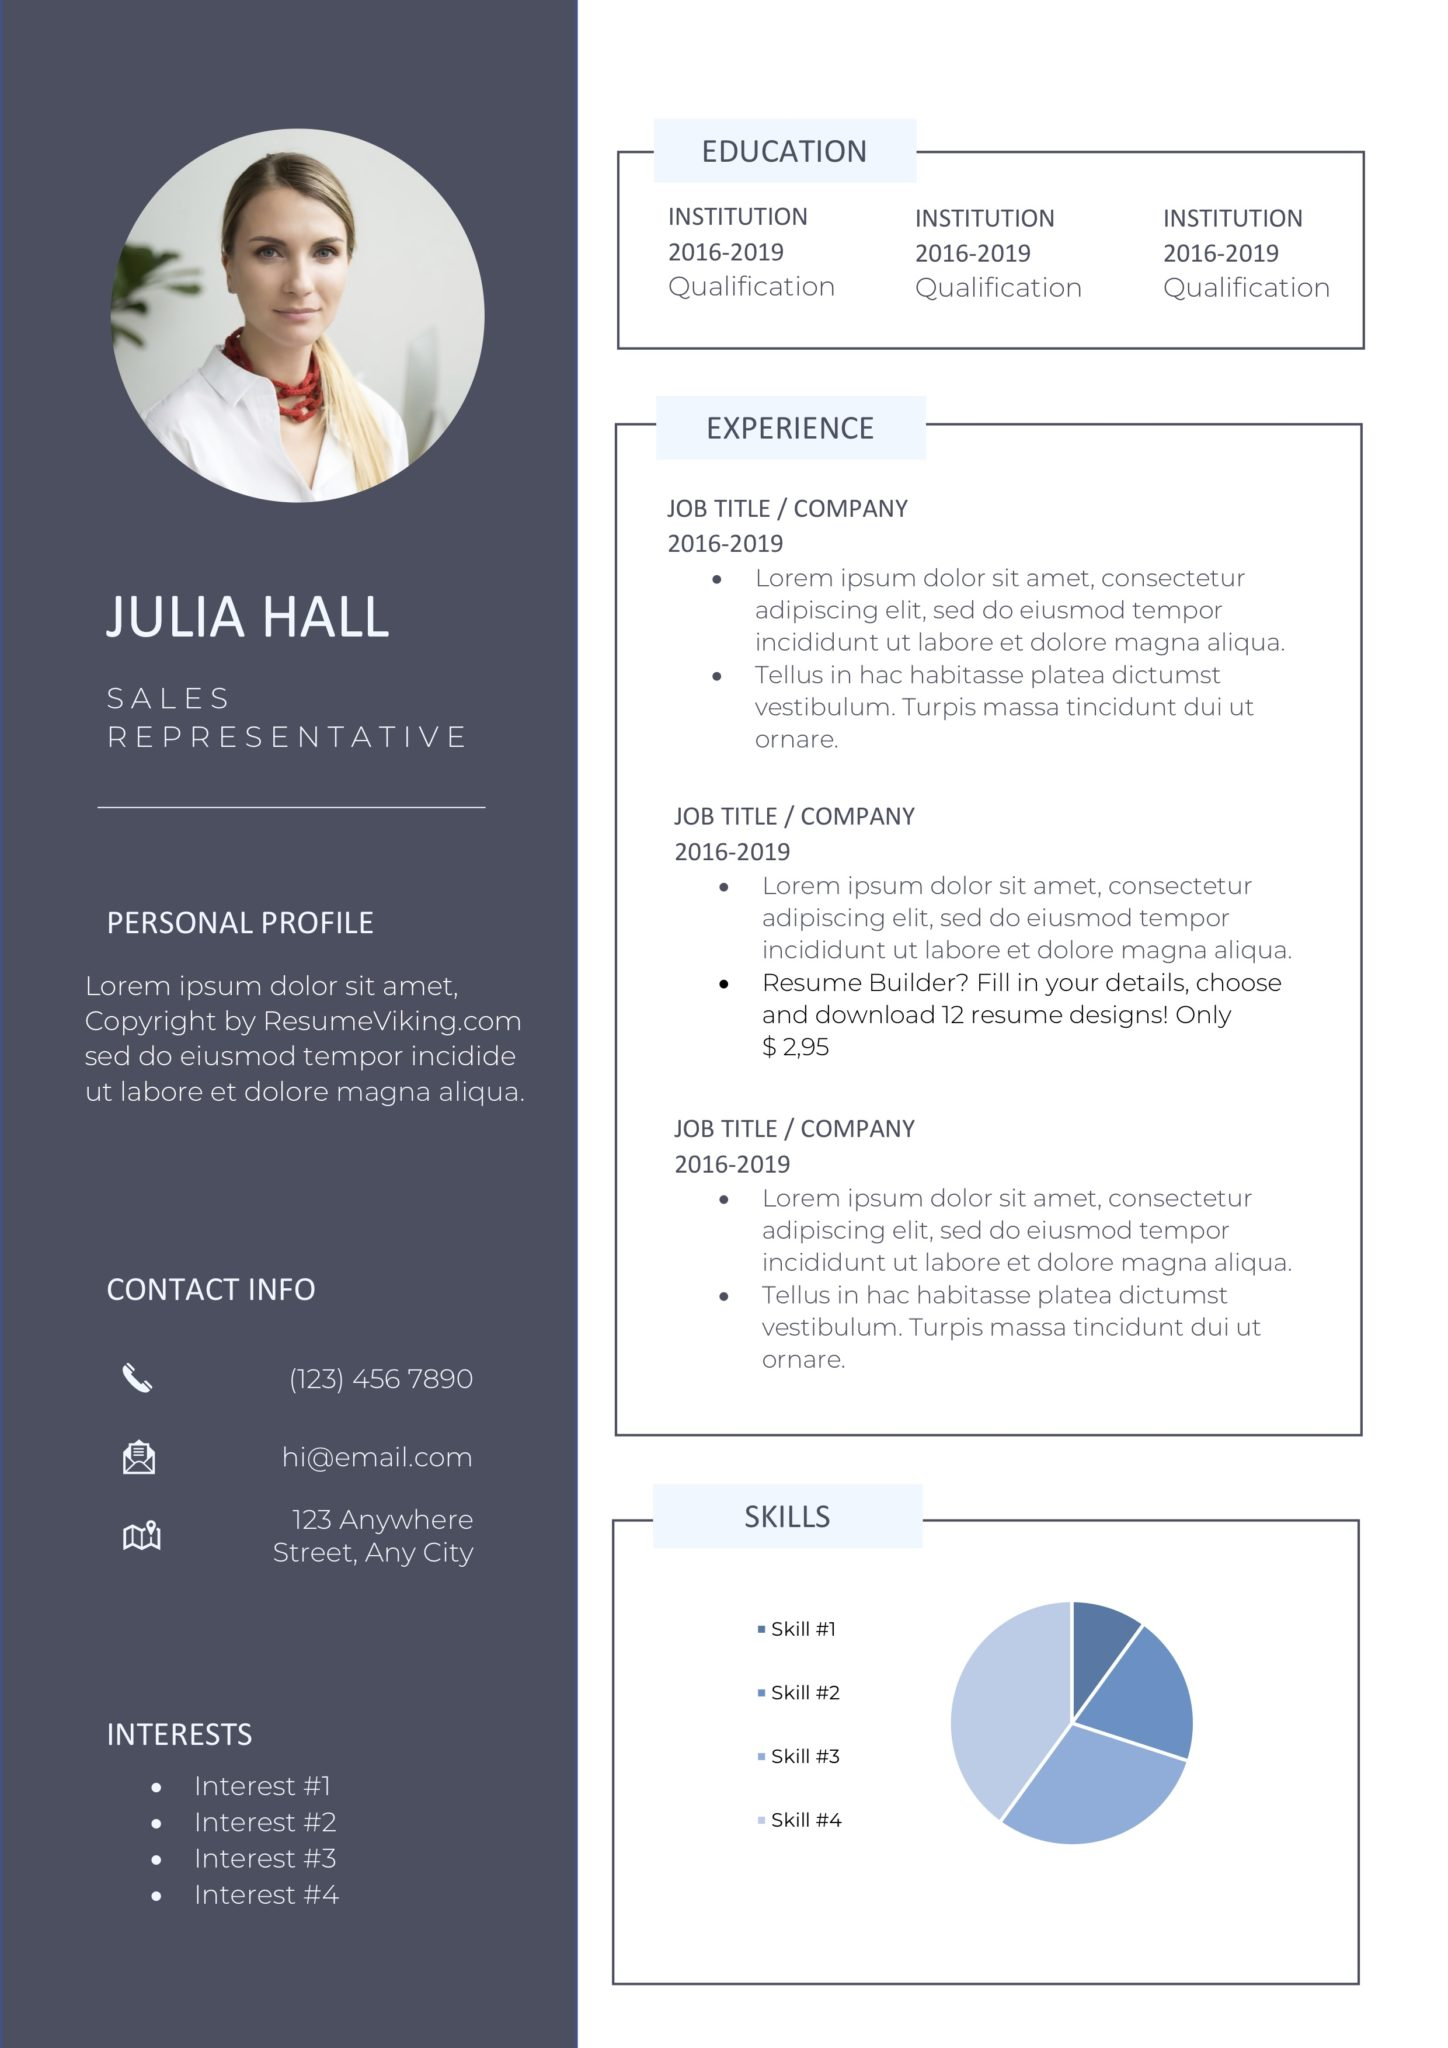 free word resume templates in ms functional template resumeviking scaled software Resume Functional Resume Template Word 2003